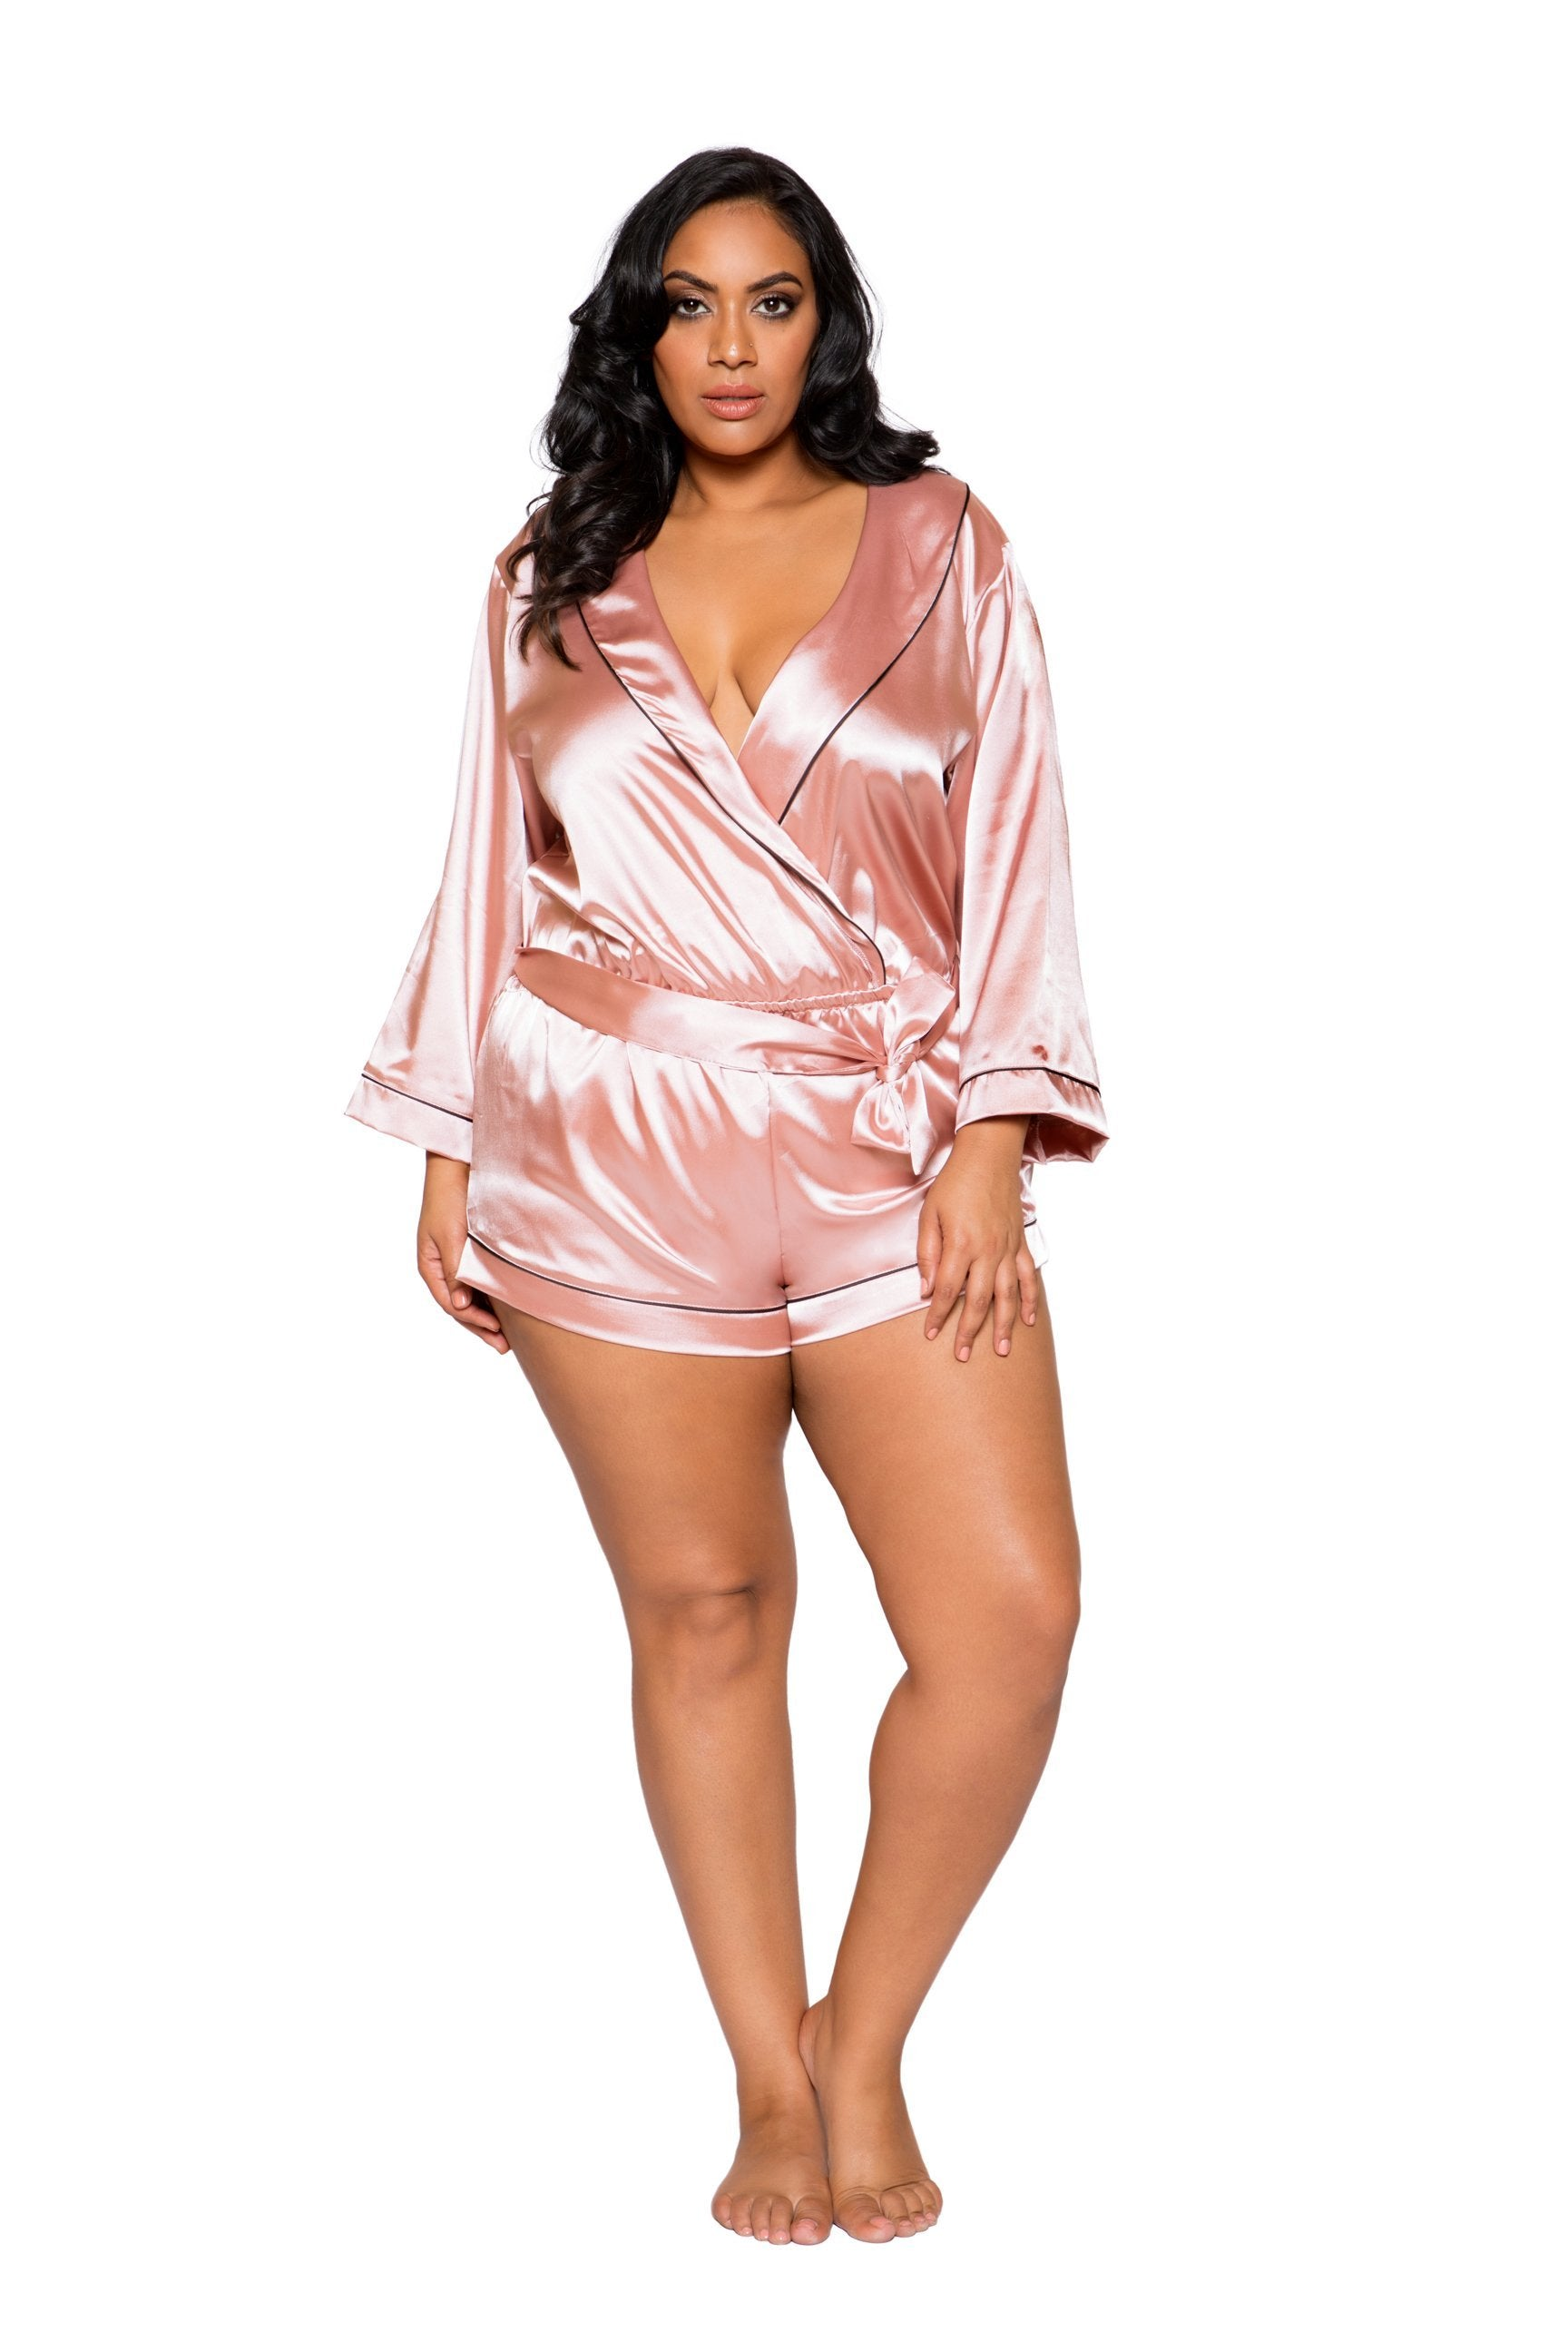 LI283 Roma Confidential Wholesale Plus Size Lingerie Pink Chic Cozy Collared Satin Romper with Tie